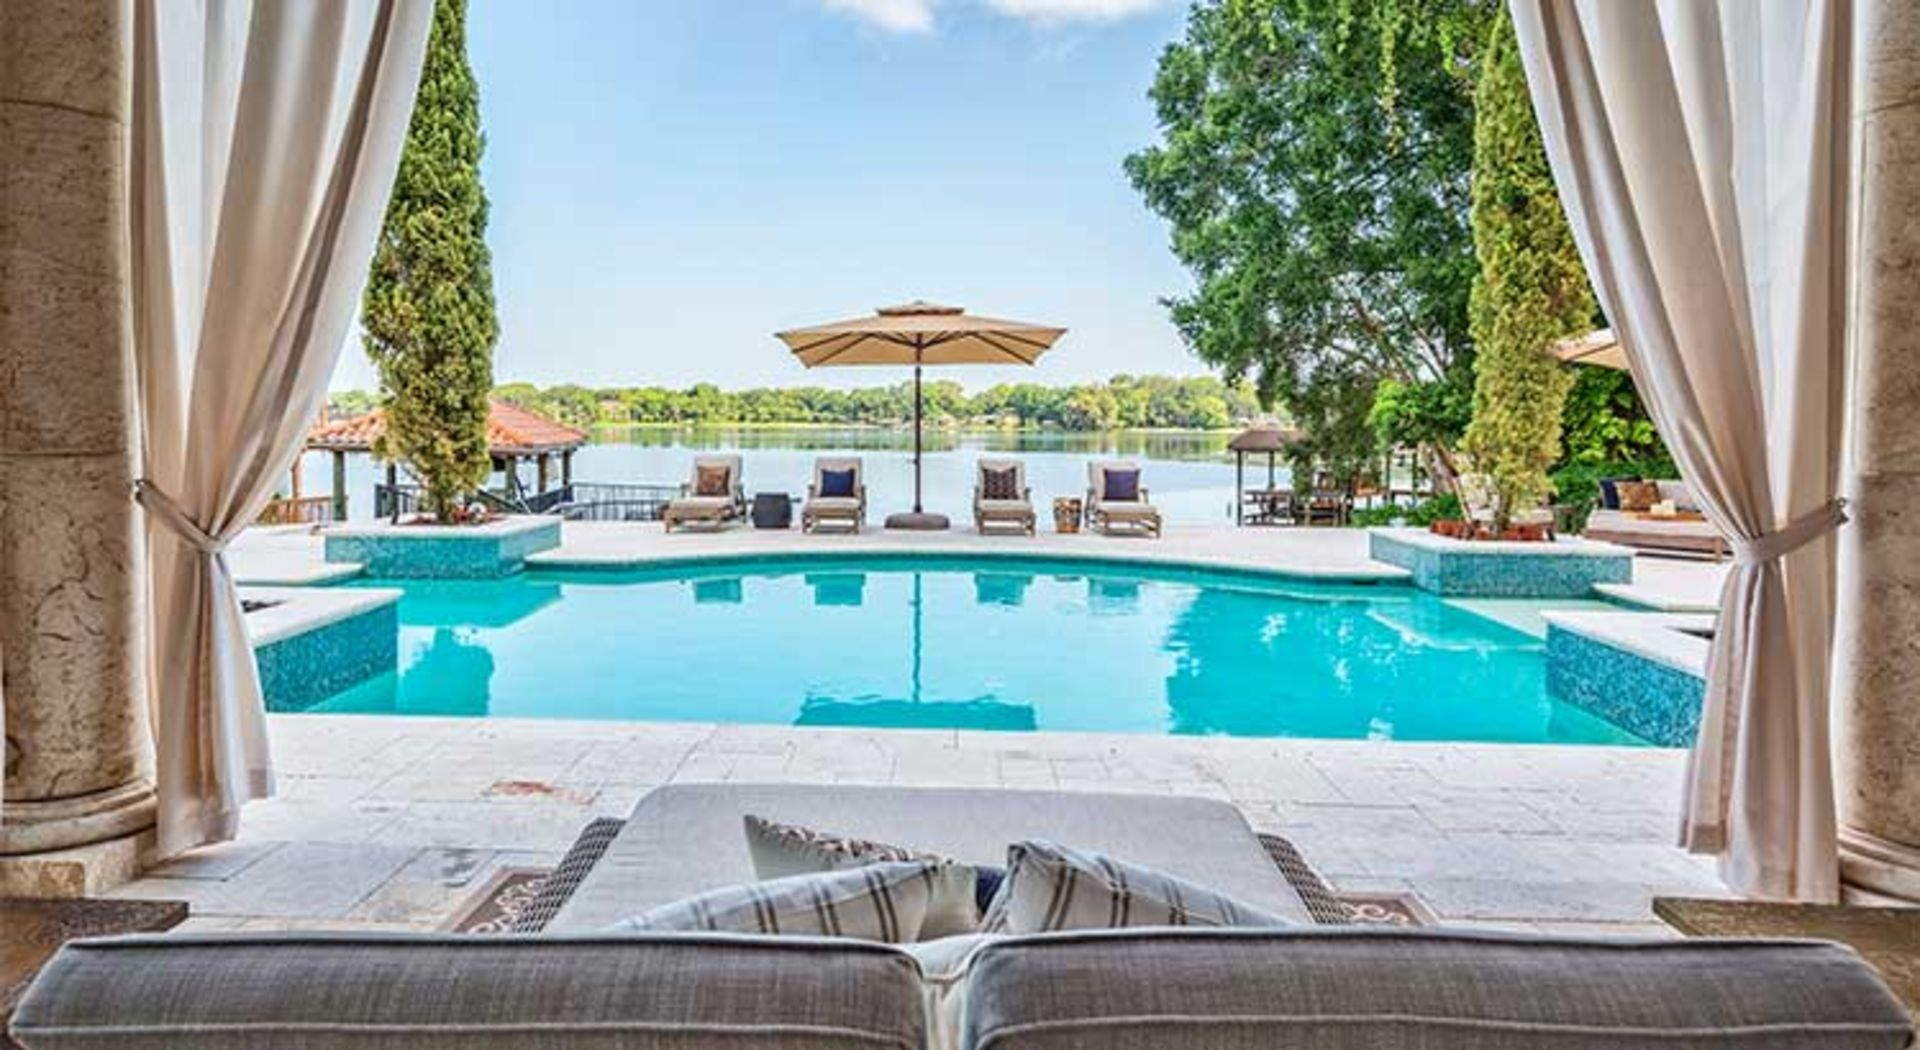 Dreaming Of A Luxury Home? Now's The Time!